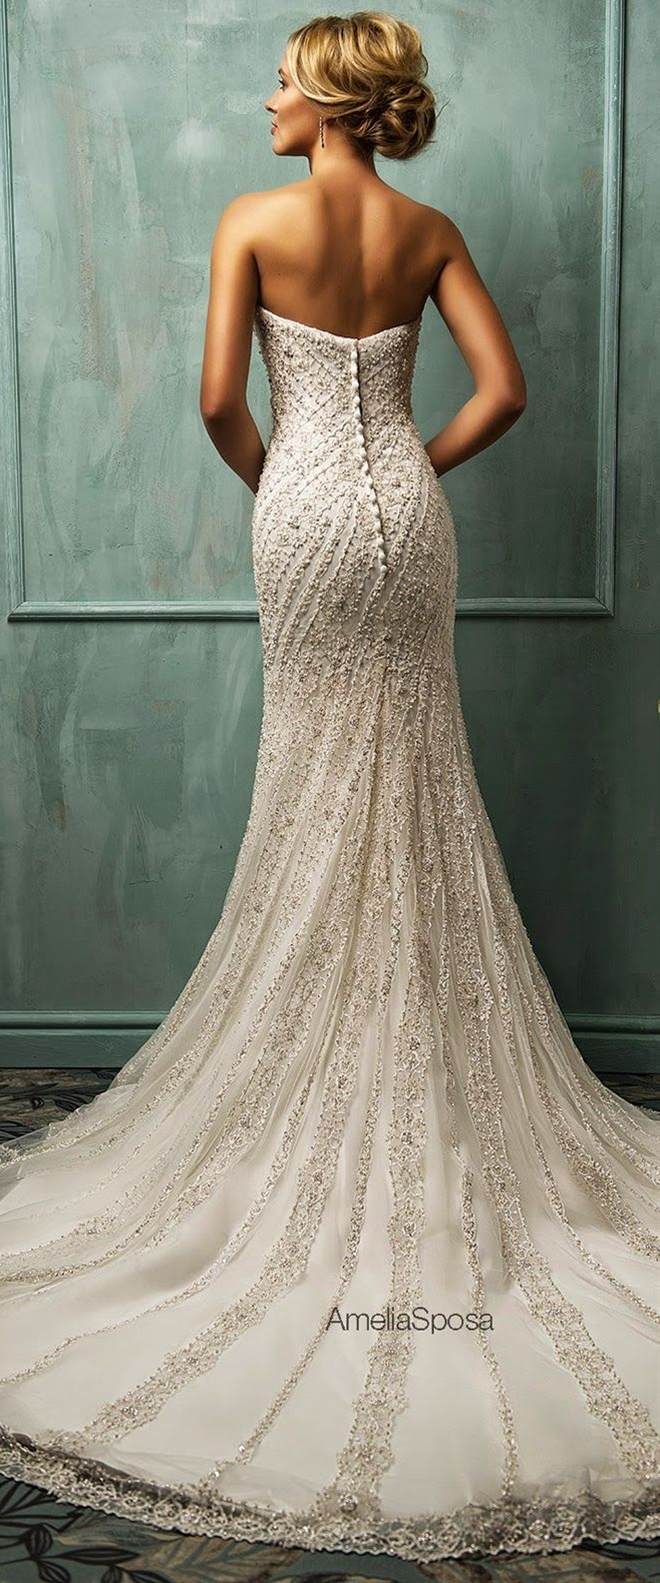 Check these out. So pretty! Amelia Sposa 2014